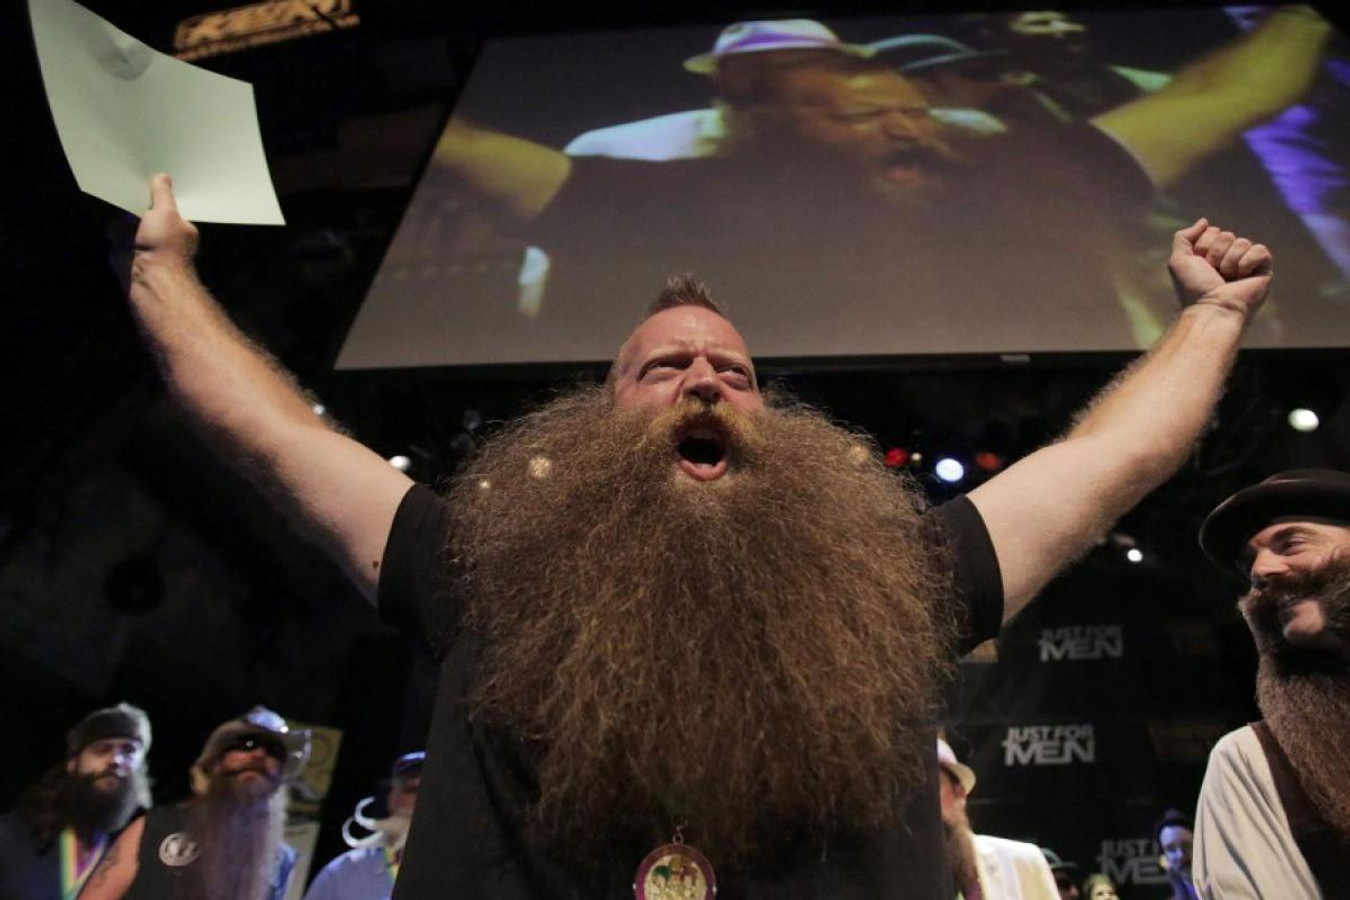 Bluebeards Original Fan Favorite Jeff Langum Is the World Beard Champion